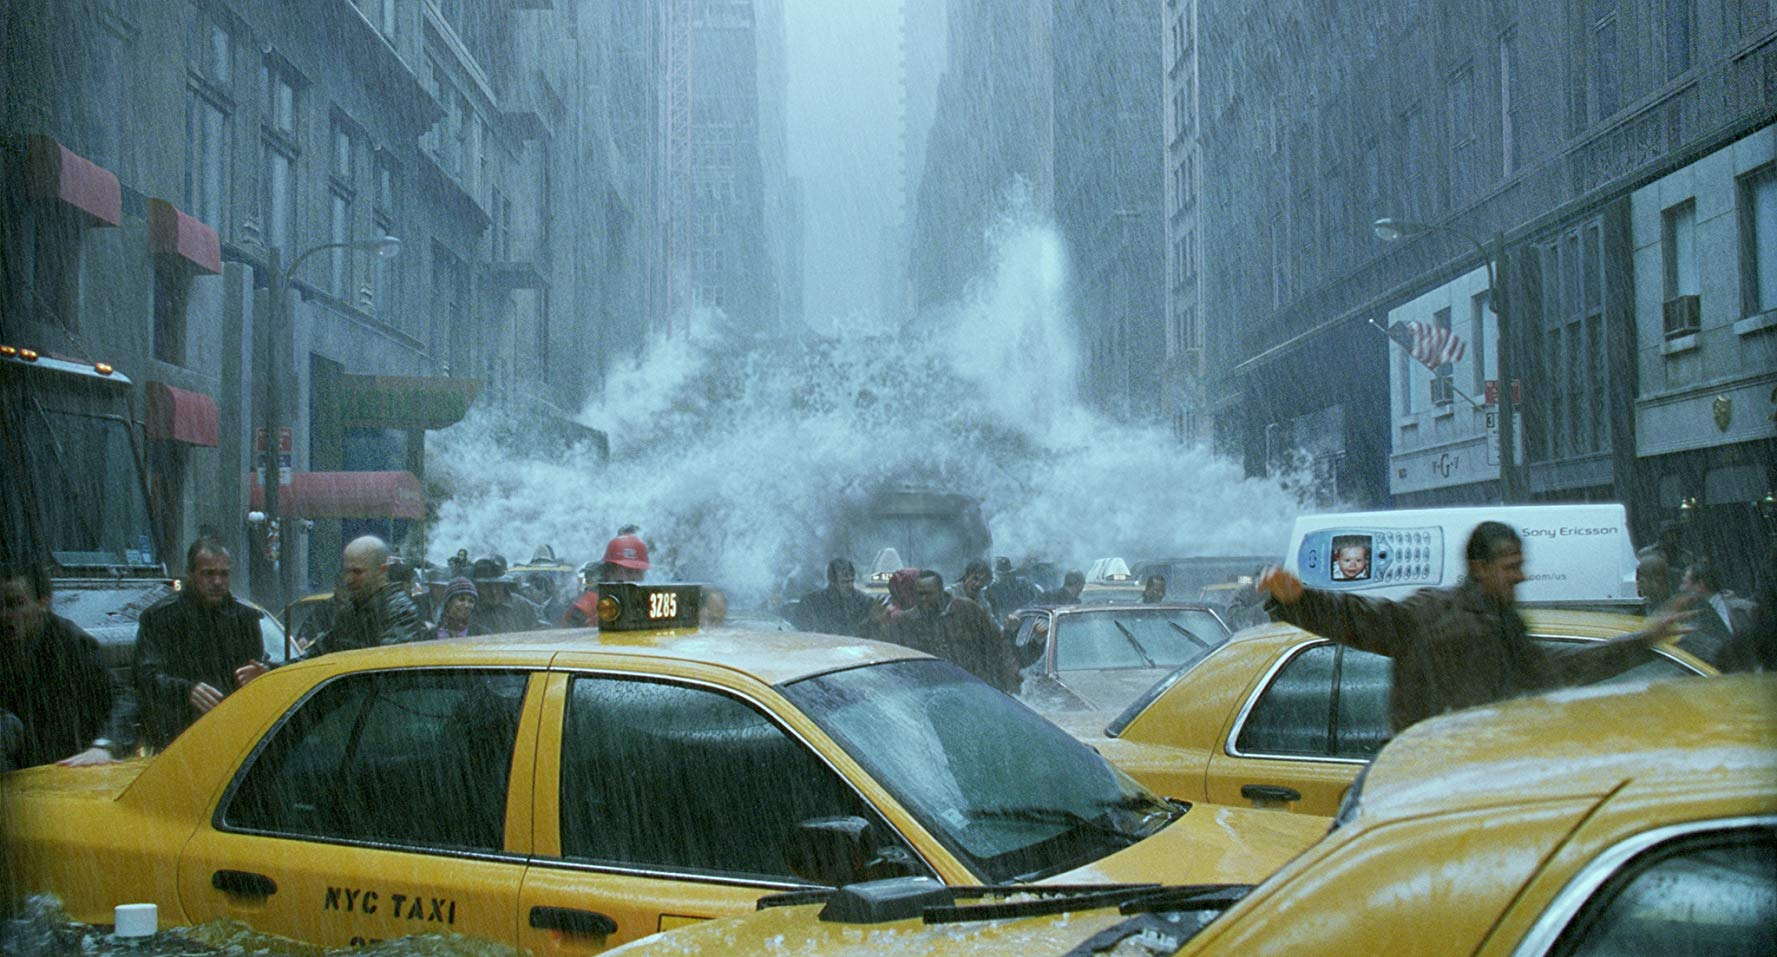 The streets of New York City hit by floods in The Day After Tomorrow (2004)